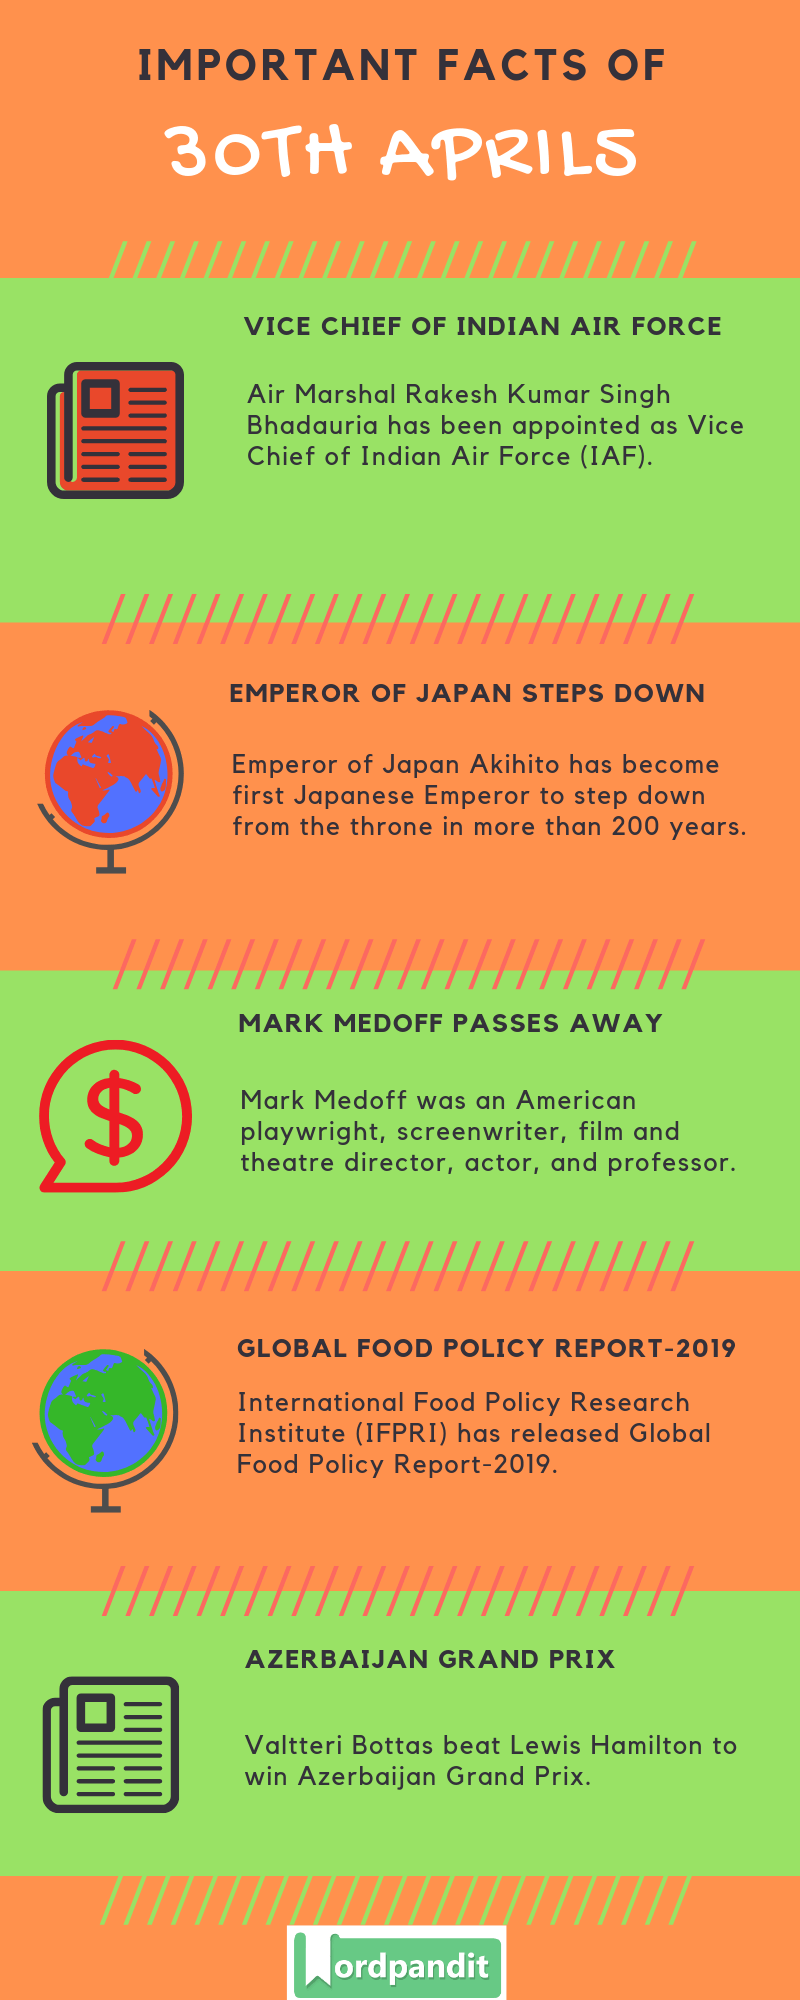 Daily Current Affairs 30 April 2019 Current Affairs Quiz 30 April 2019 Current Affairs Infographic